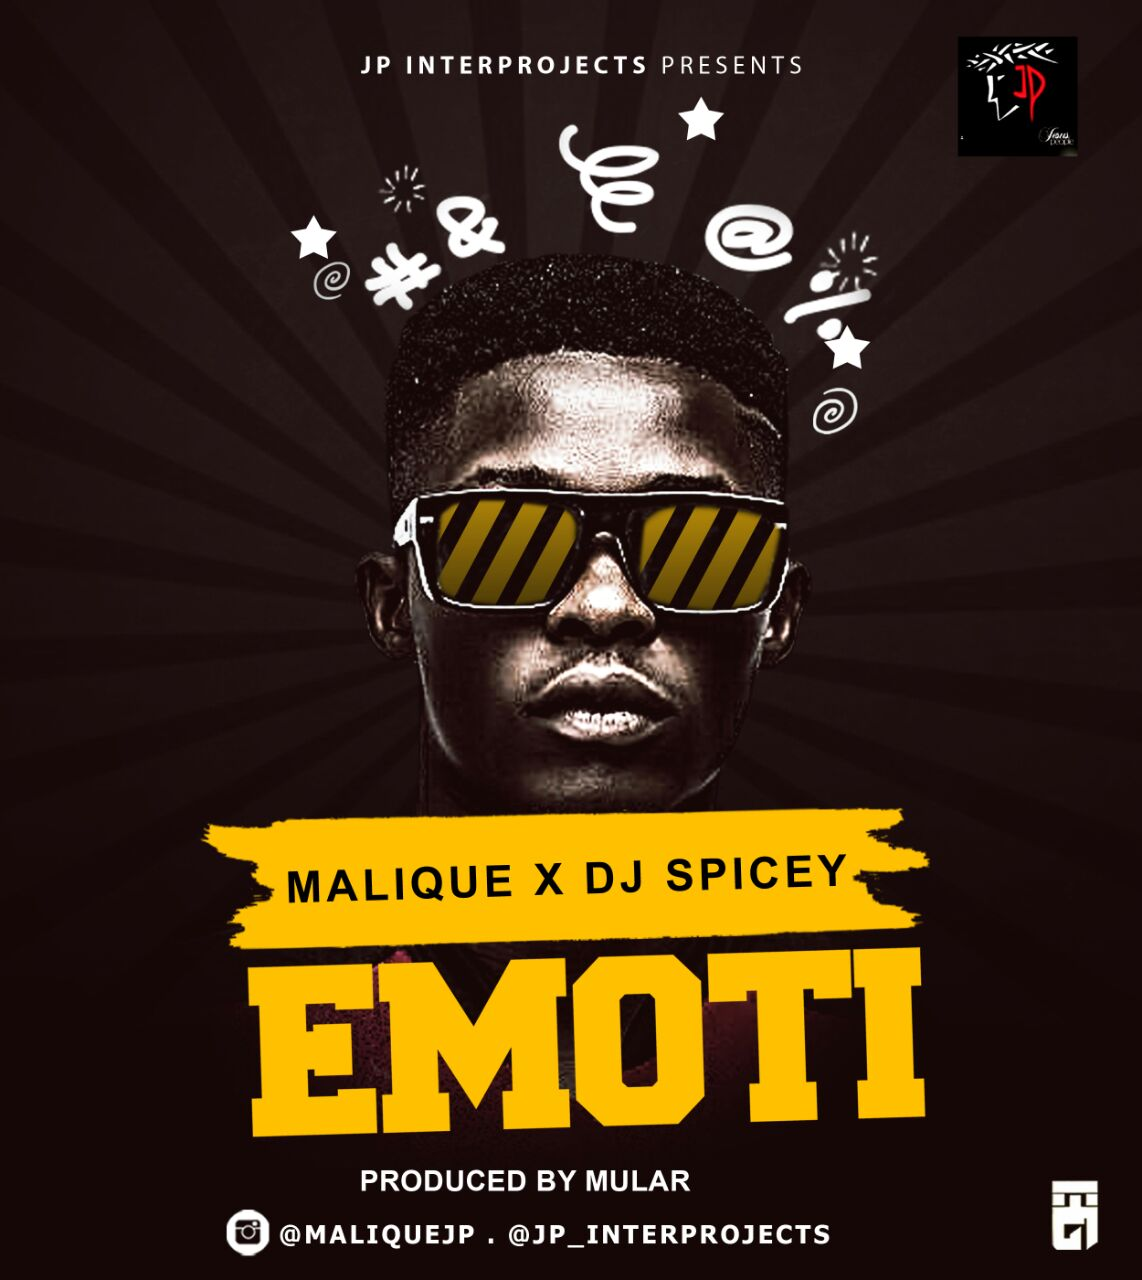 Malique ft. DJ Spicey – Emoti (Prod. MULAR)